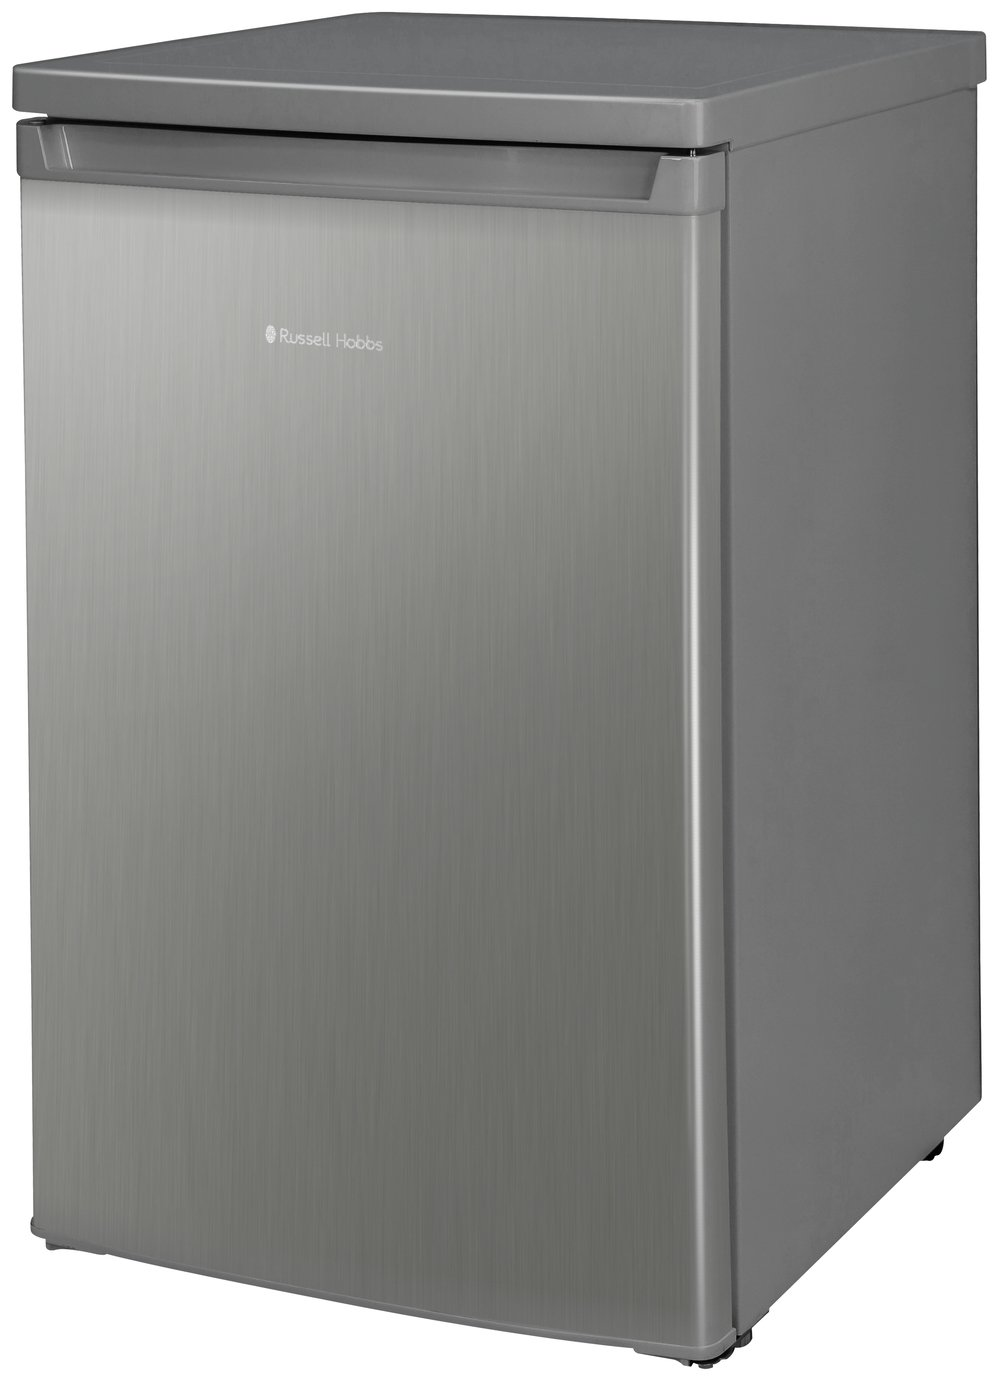 Russell Hobbs RHUCFZ55SS Under Counter Freezer - S/Steel